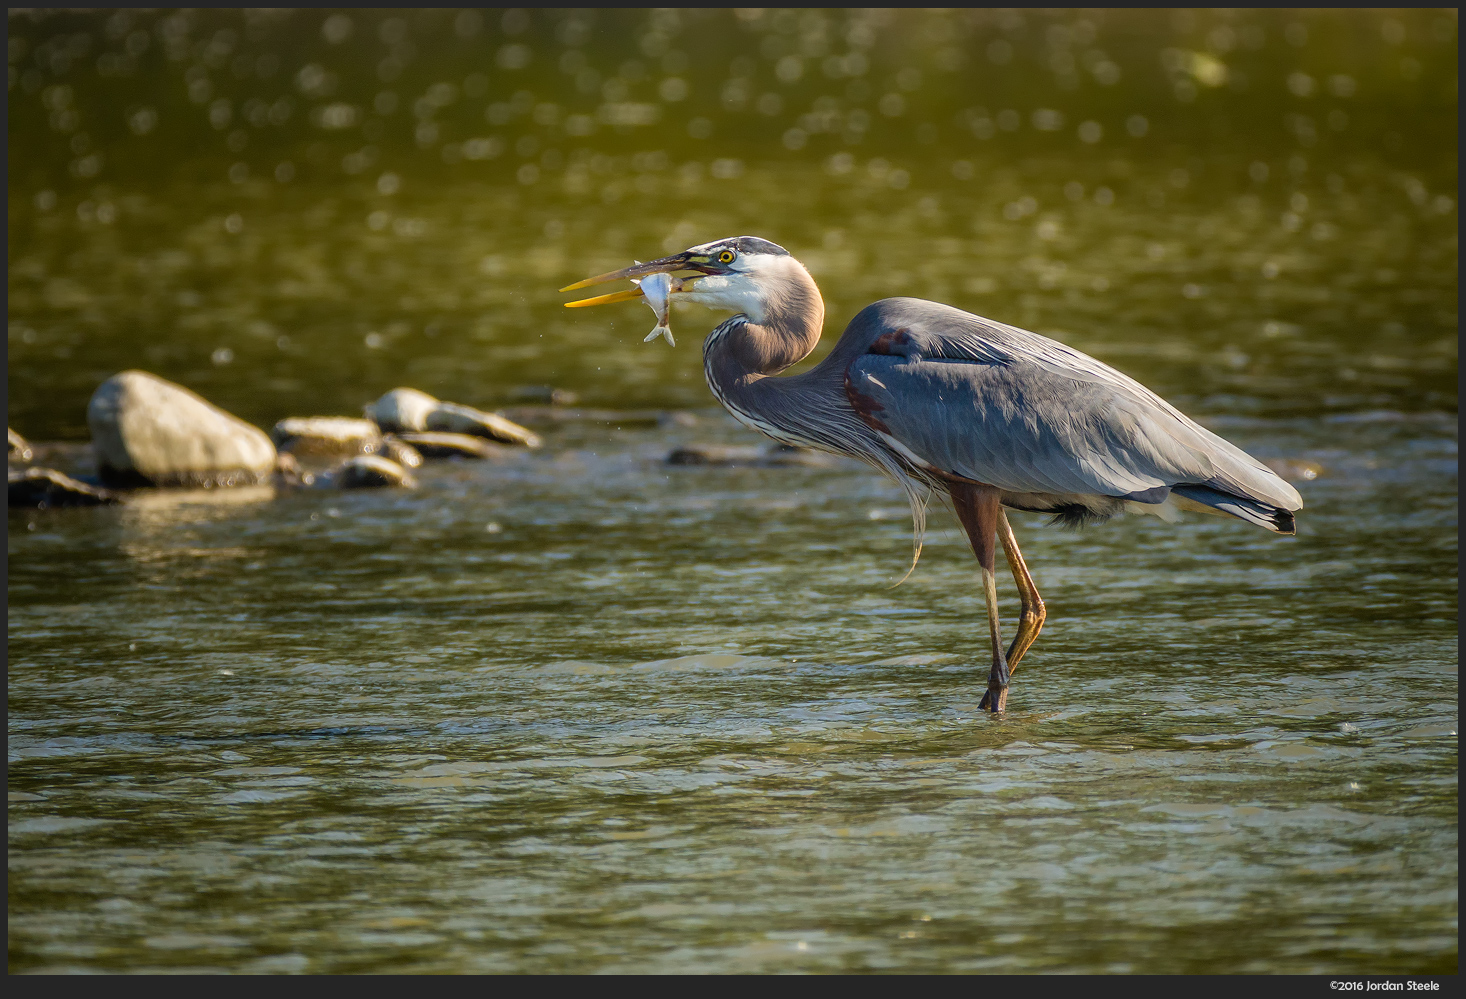 Great Blue Heron Fishing in the Scioto - Olympus OM-D E-M10 Mark II with Panasonic-Leica 100-400mm @